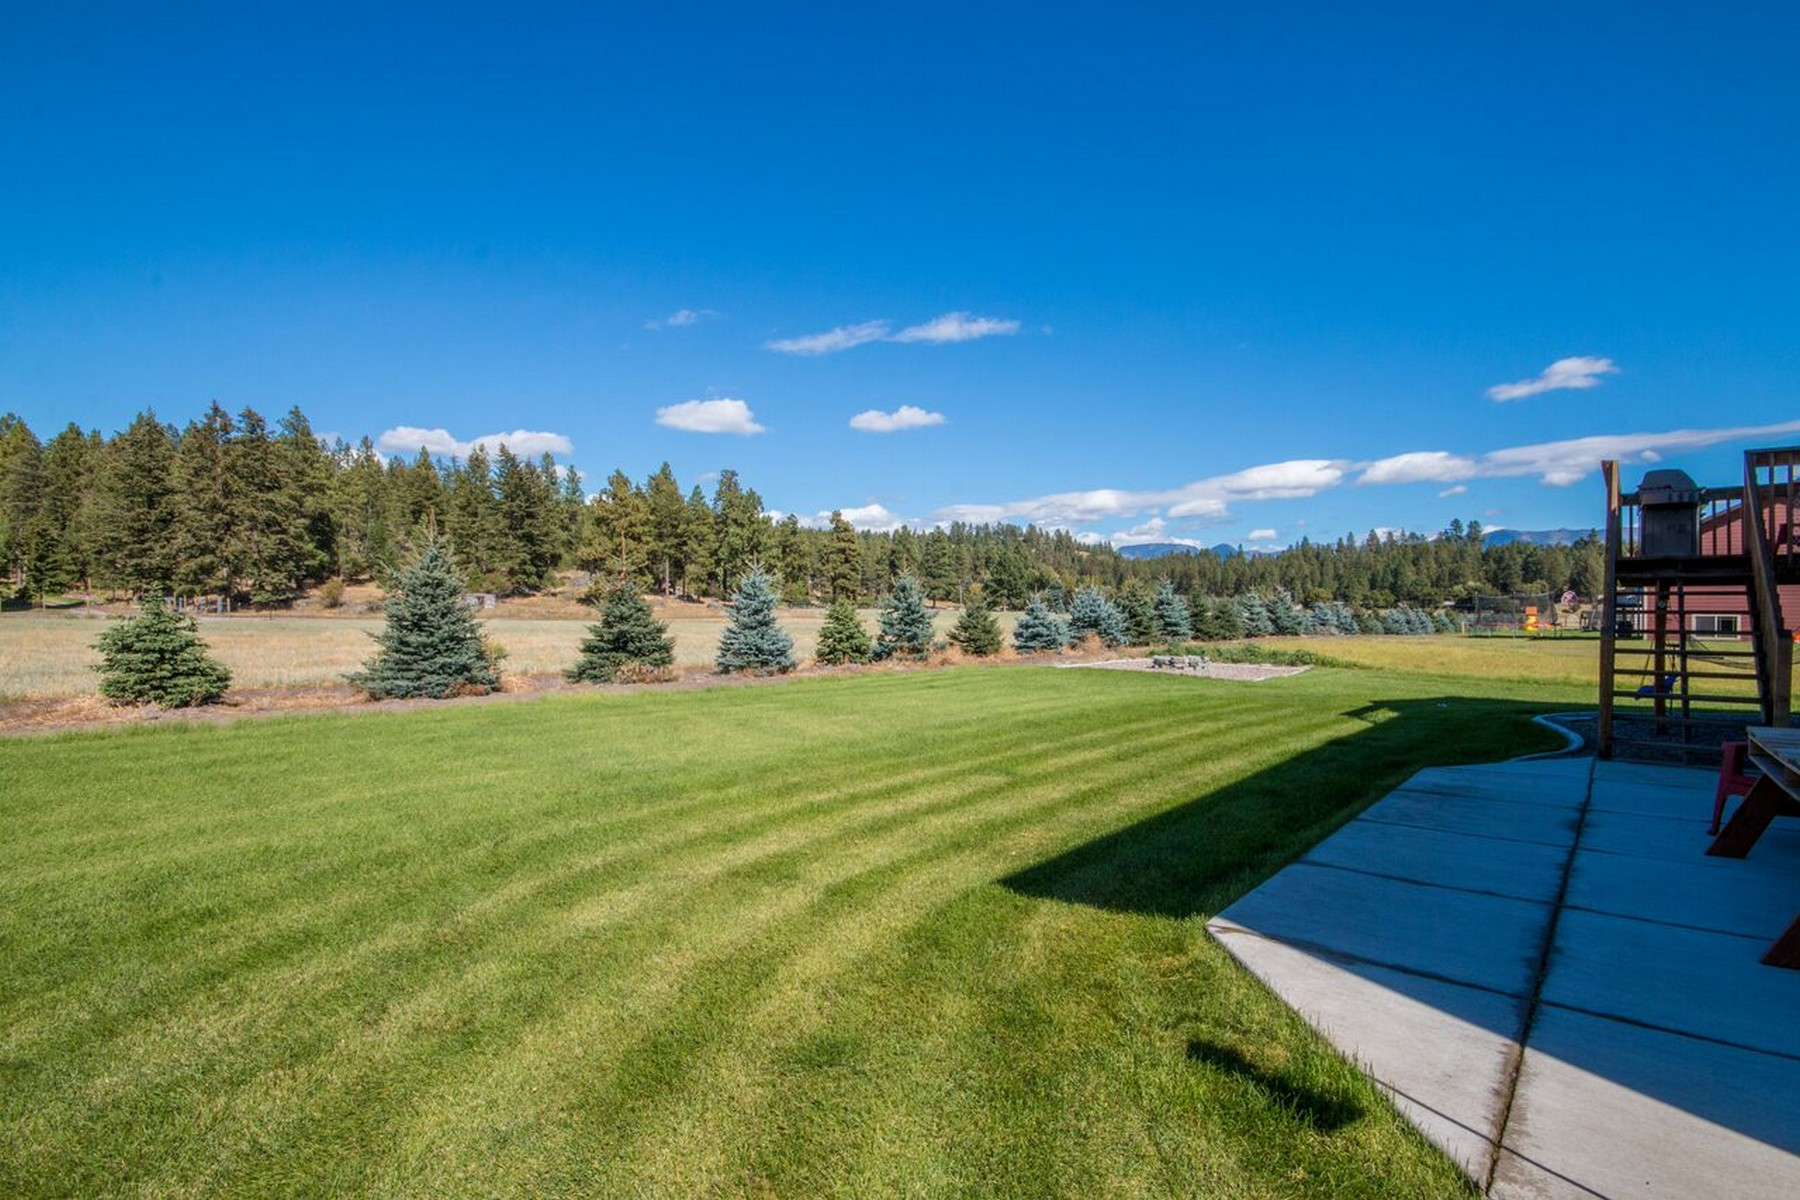 Single Family Home for Sale at 1181 Mill Creek Dr , Bigfork, MT 59911 1181 Mill Creek Dr Bigfork, Montana 59911 United States